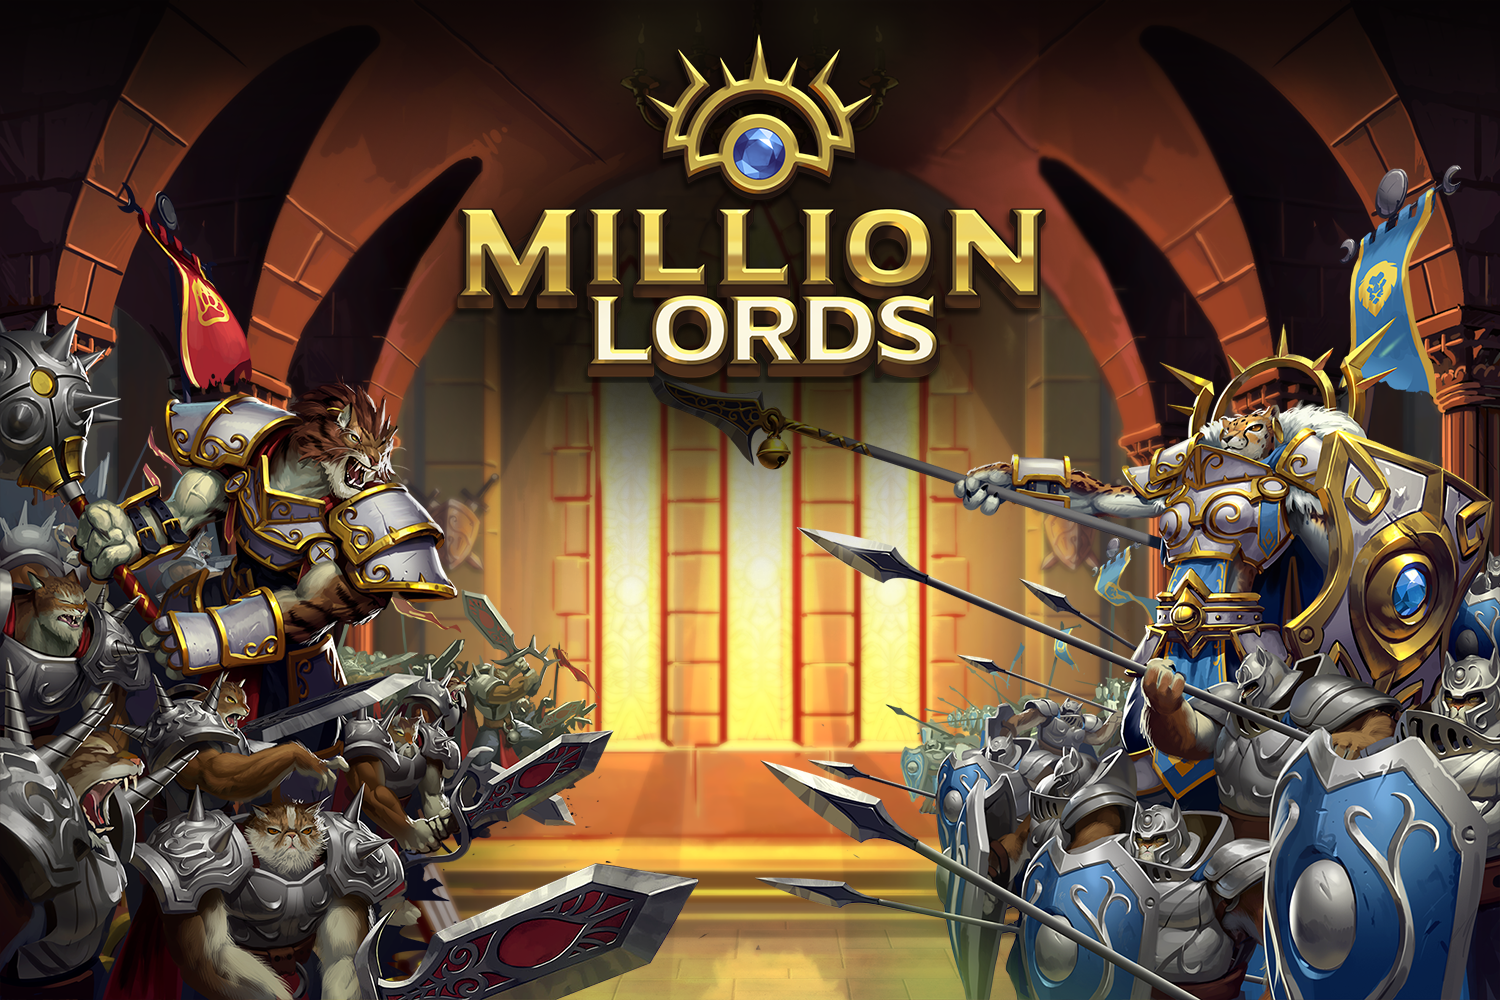 Laila bouchara UX/UI designer - Million lords mobile game